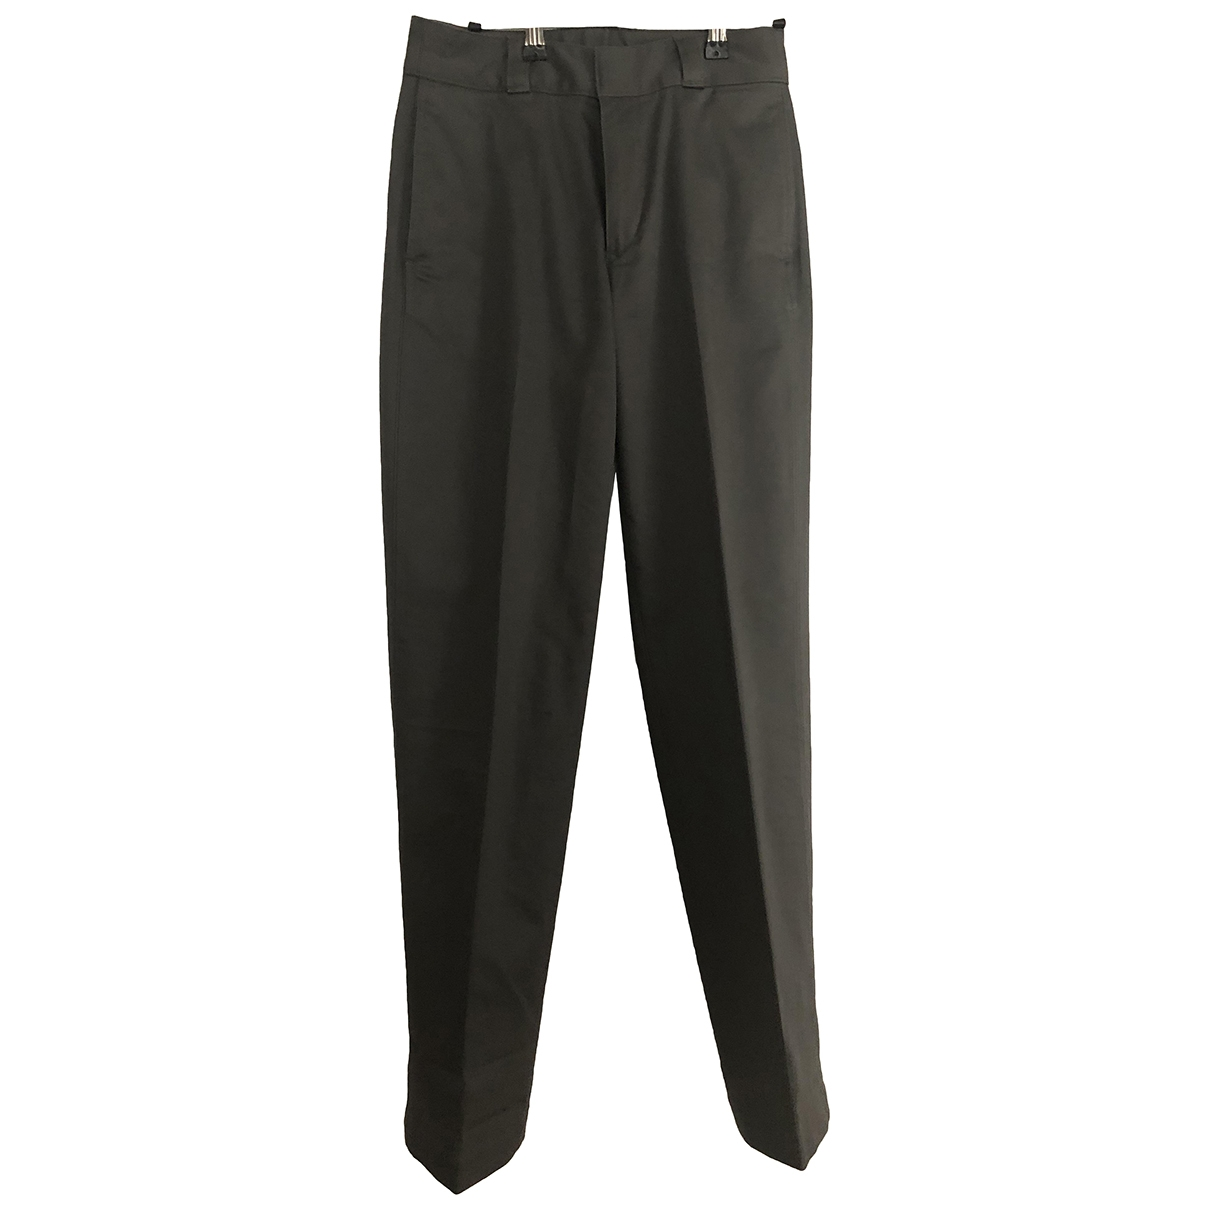 Uniqlo \N Grey Cotton Trousers for Women 36 FR